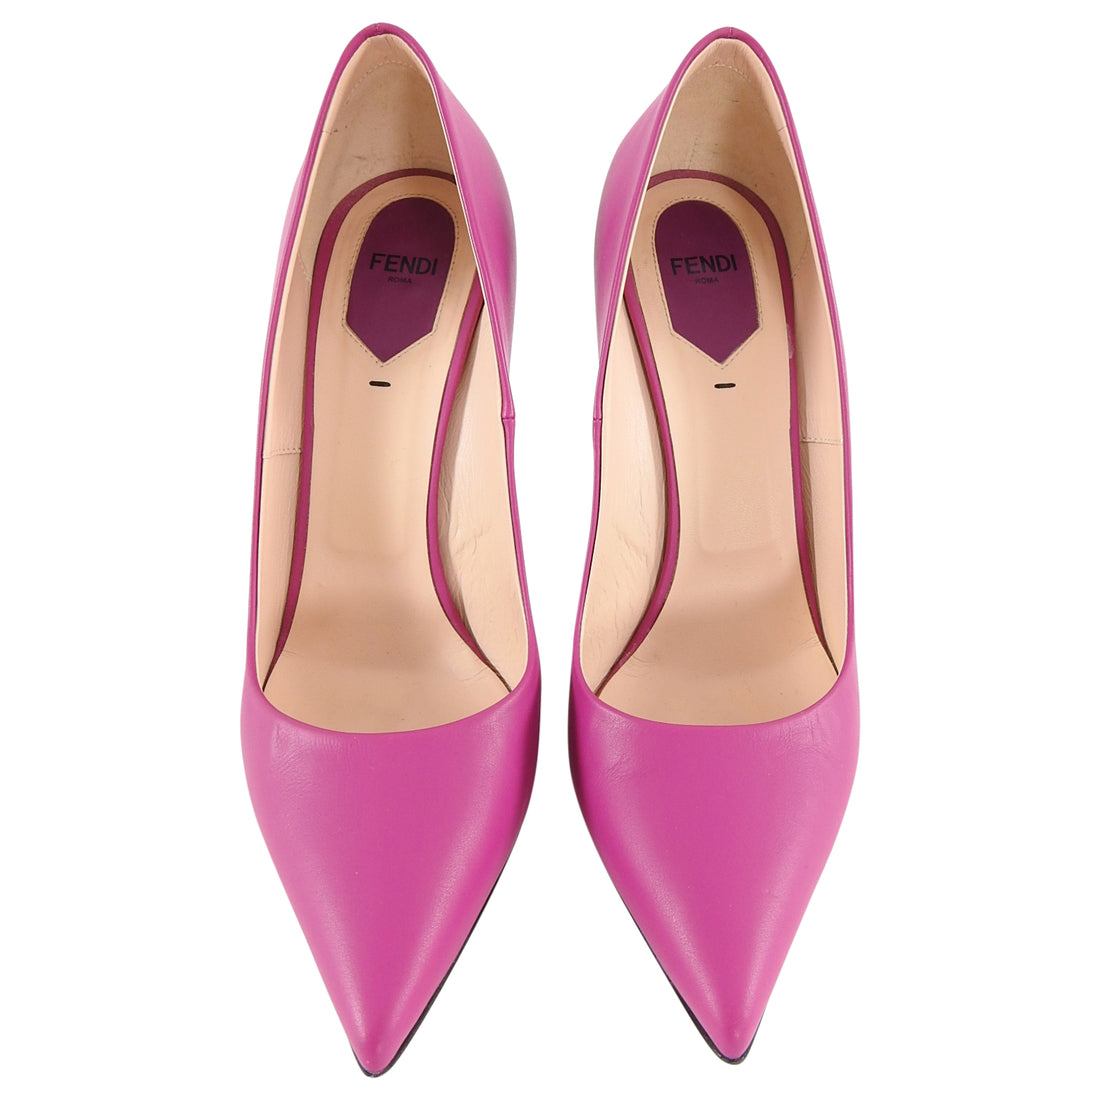 Fendi Magenta Anne Pumps with Slim Stiletto Heel - 41